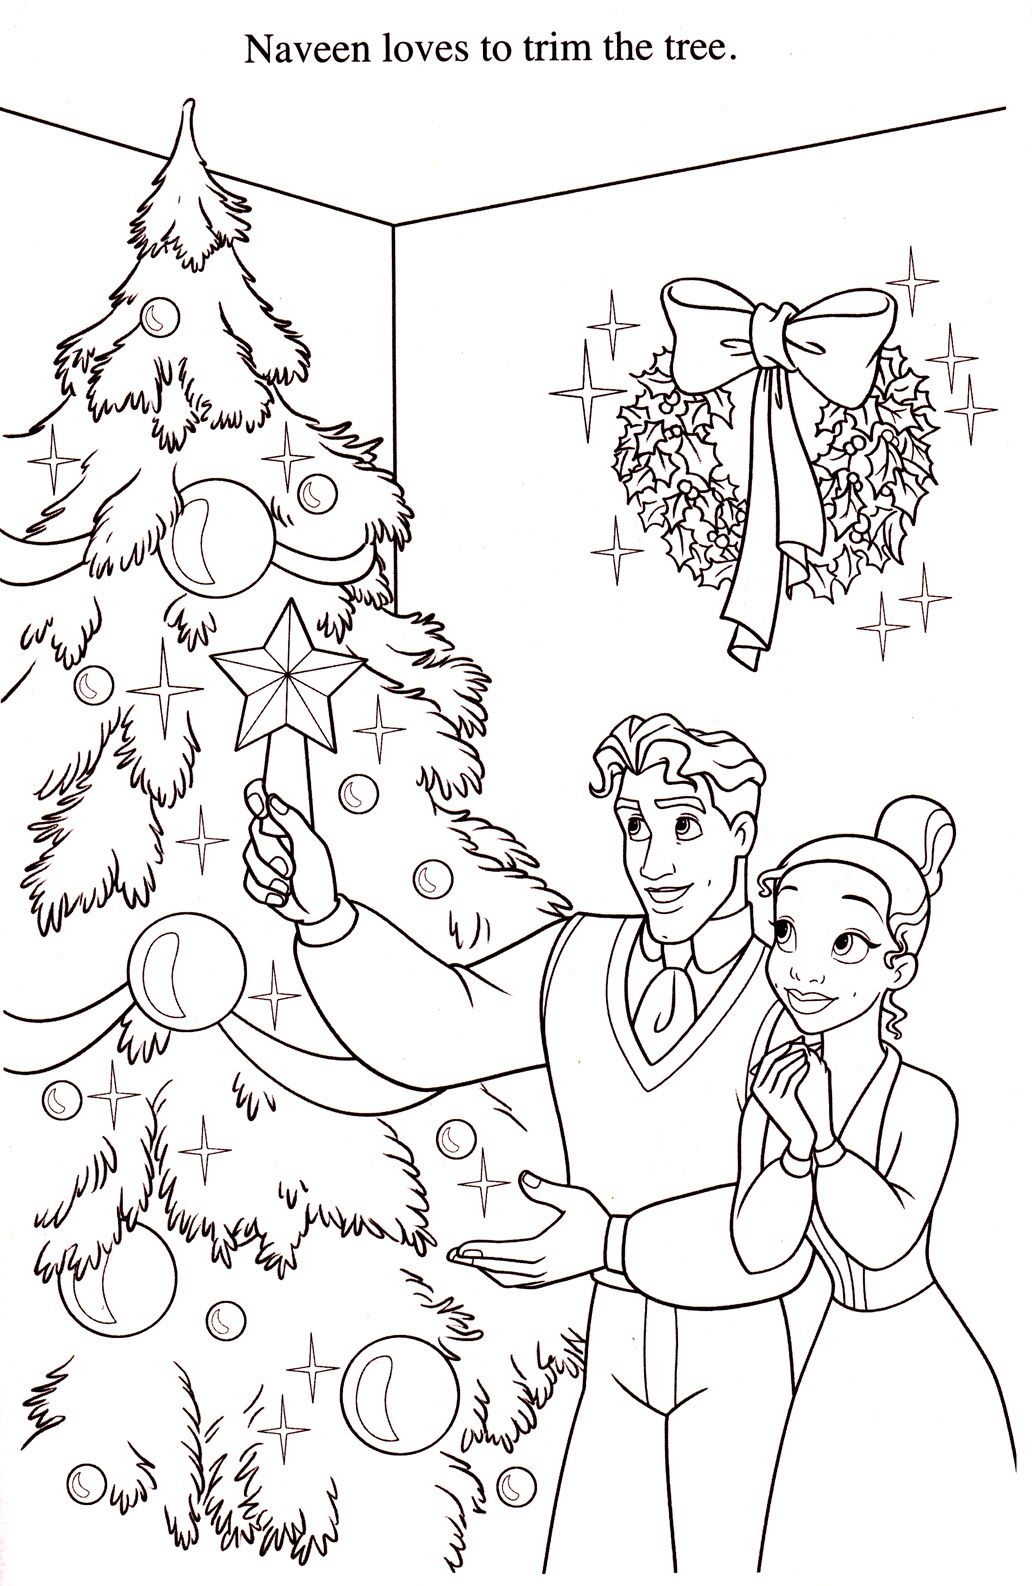 Disney Coloring Pages Frog Coloring Pages Disney Princess Coloring Pages Disney Coloring Pages